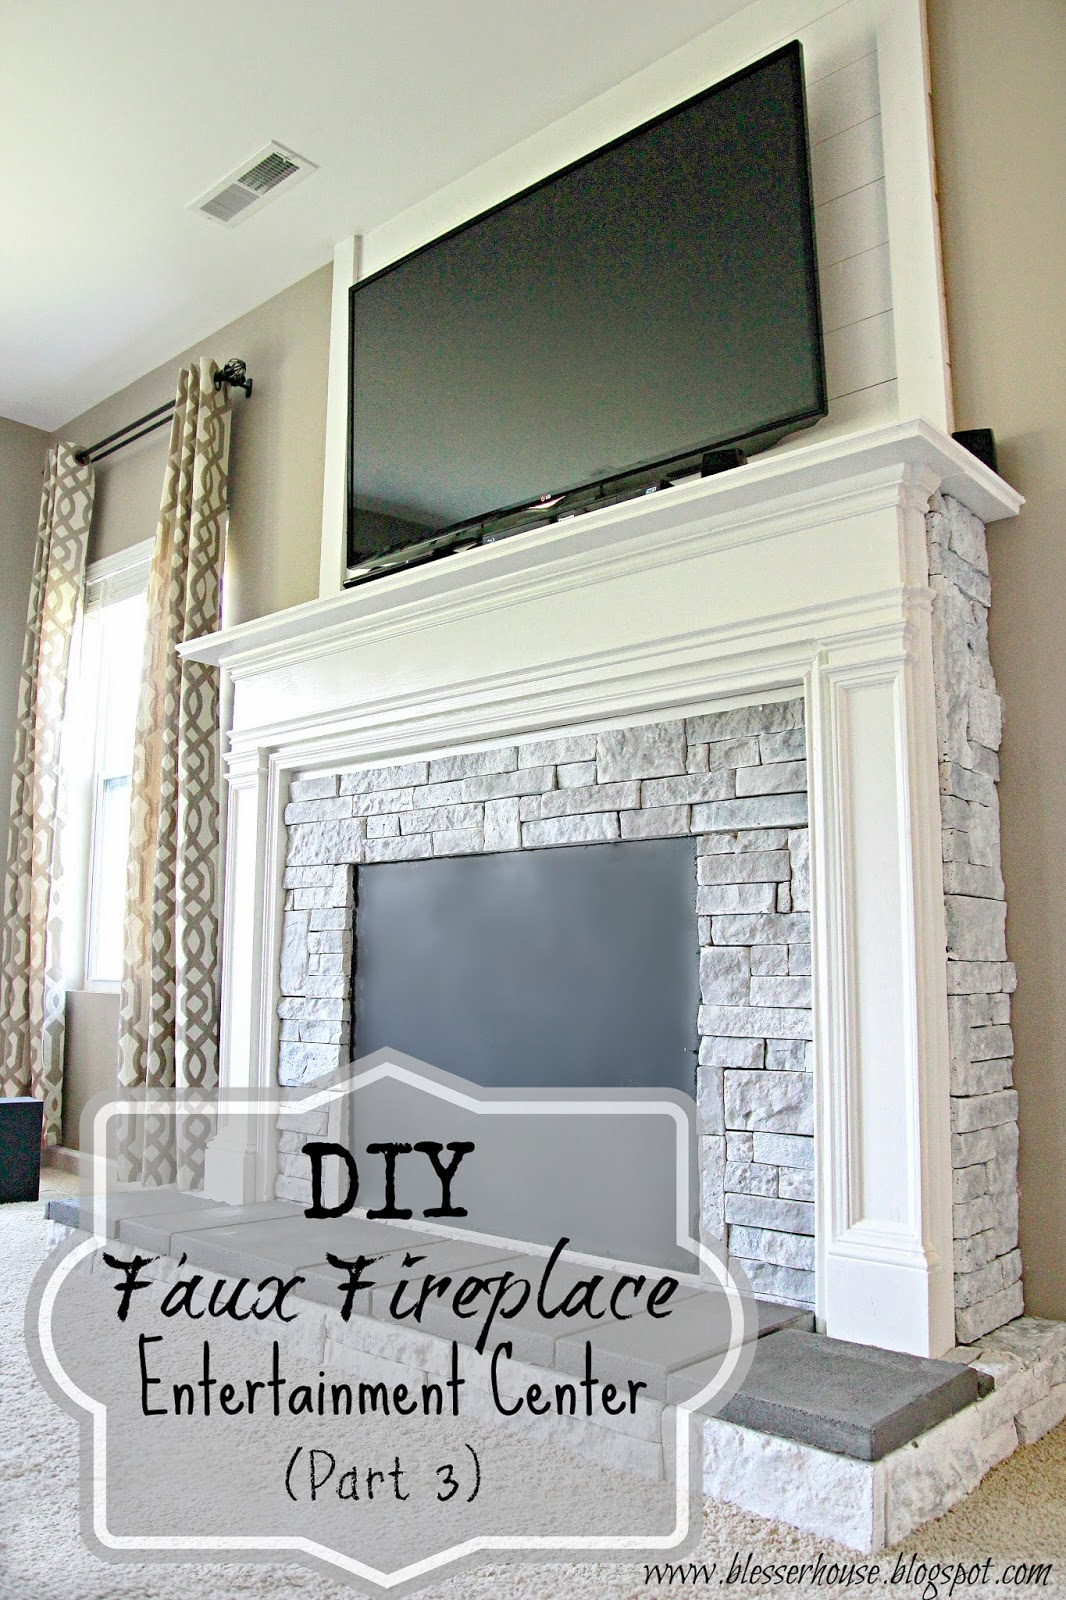 Diy faux fireplace entertainment center part one blesser house diy faux fireplace entertainment center part 3 solutioingenieria Gallery